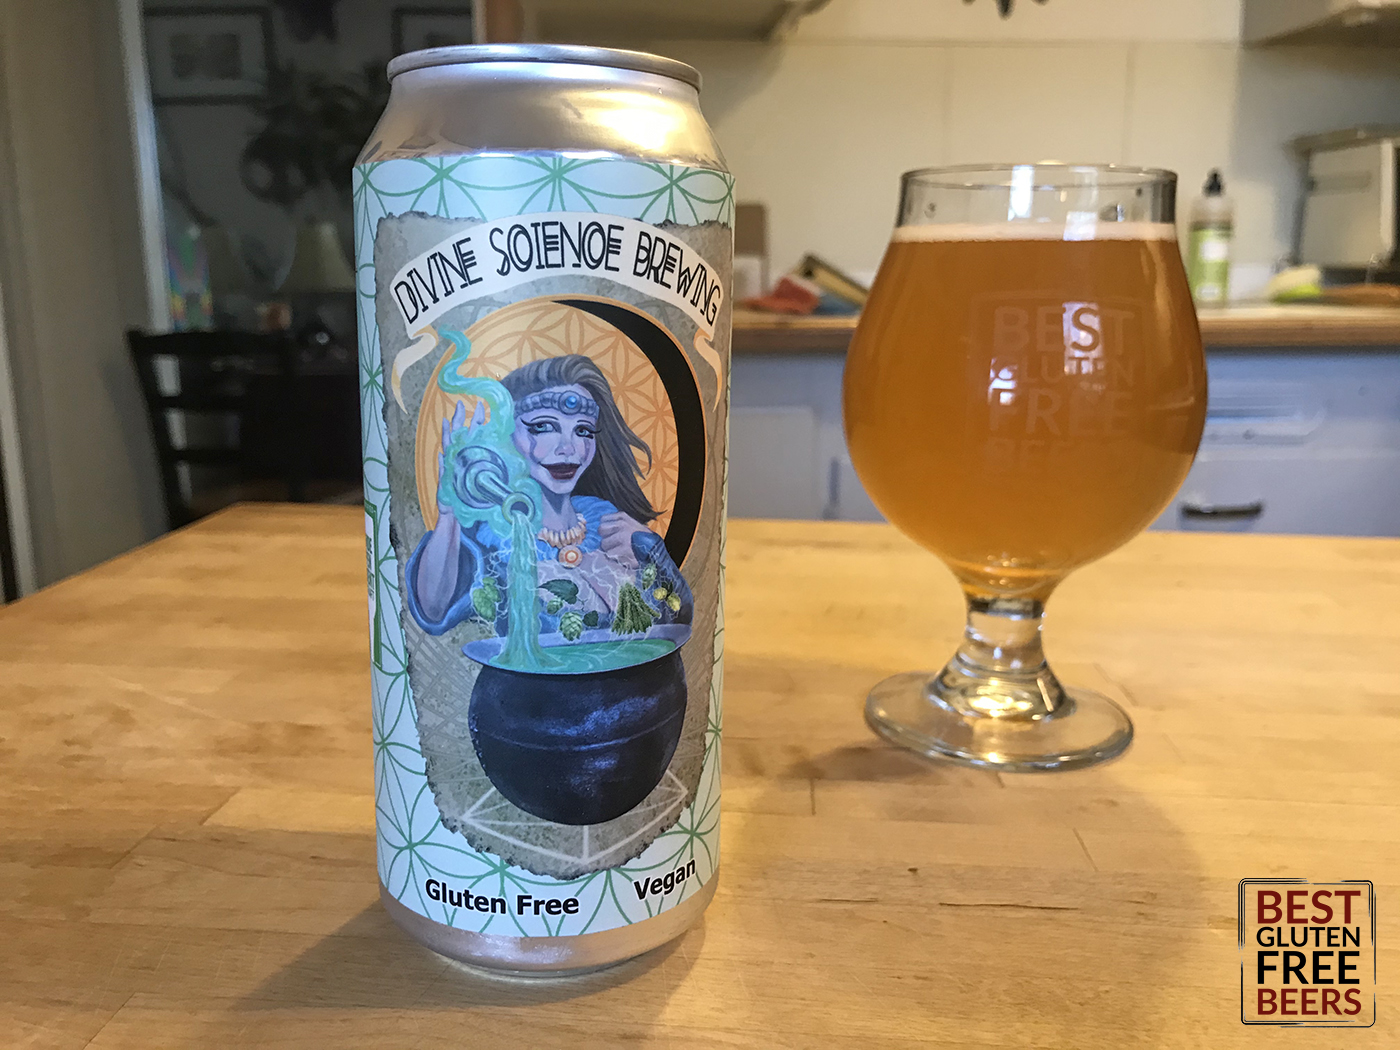 Divine Science Brewing Third Contact IPA gluten free beer